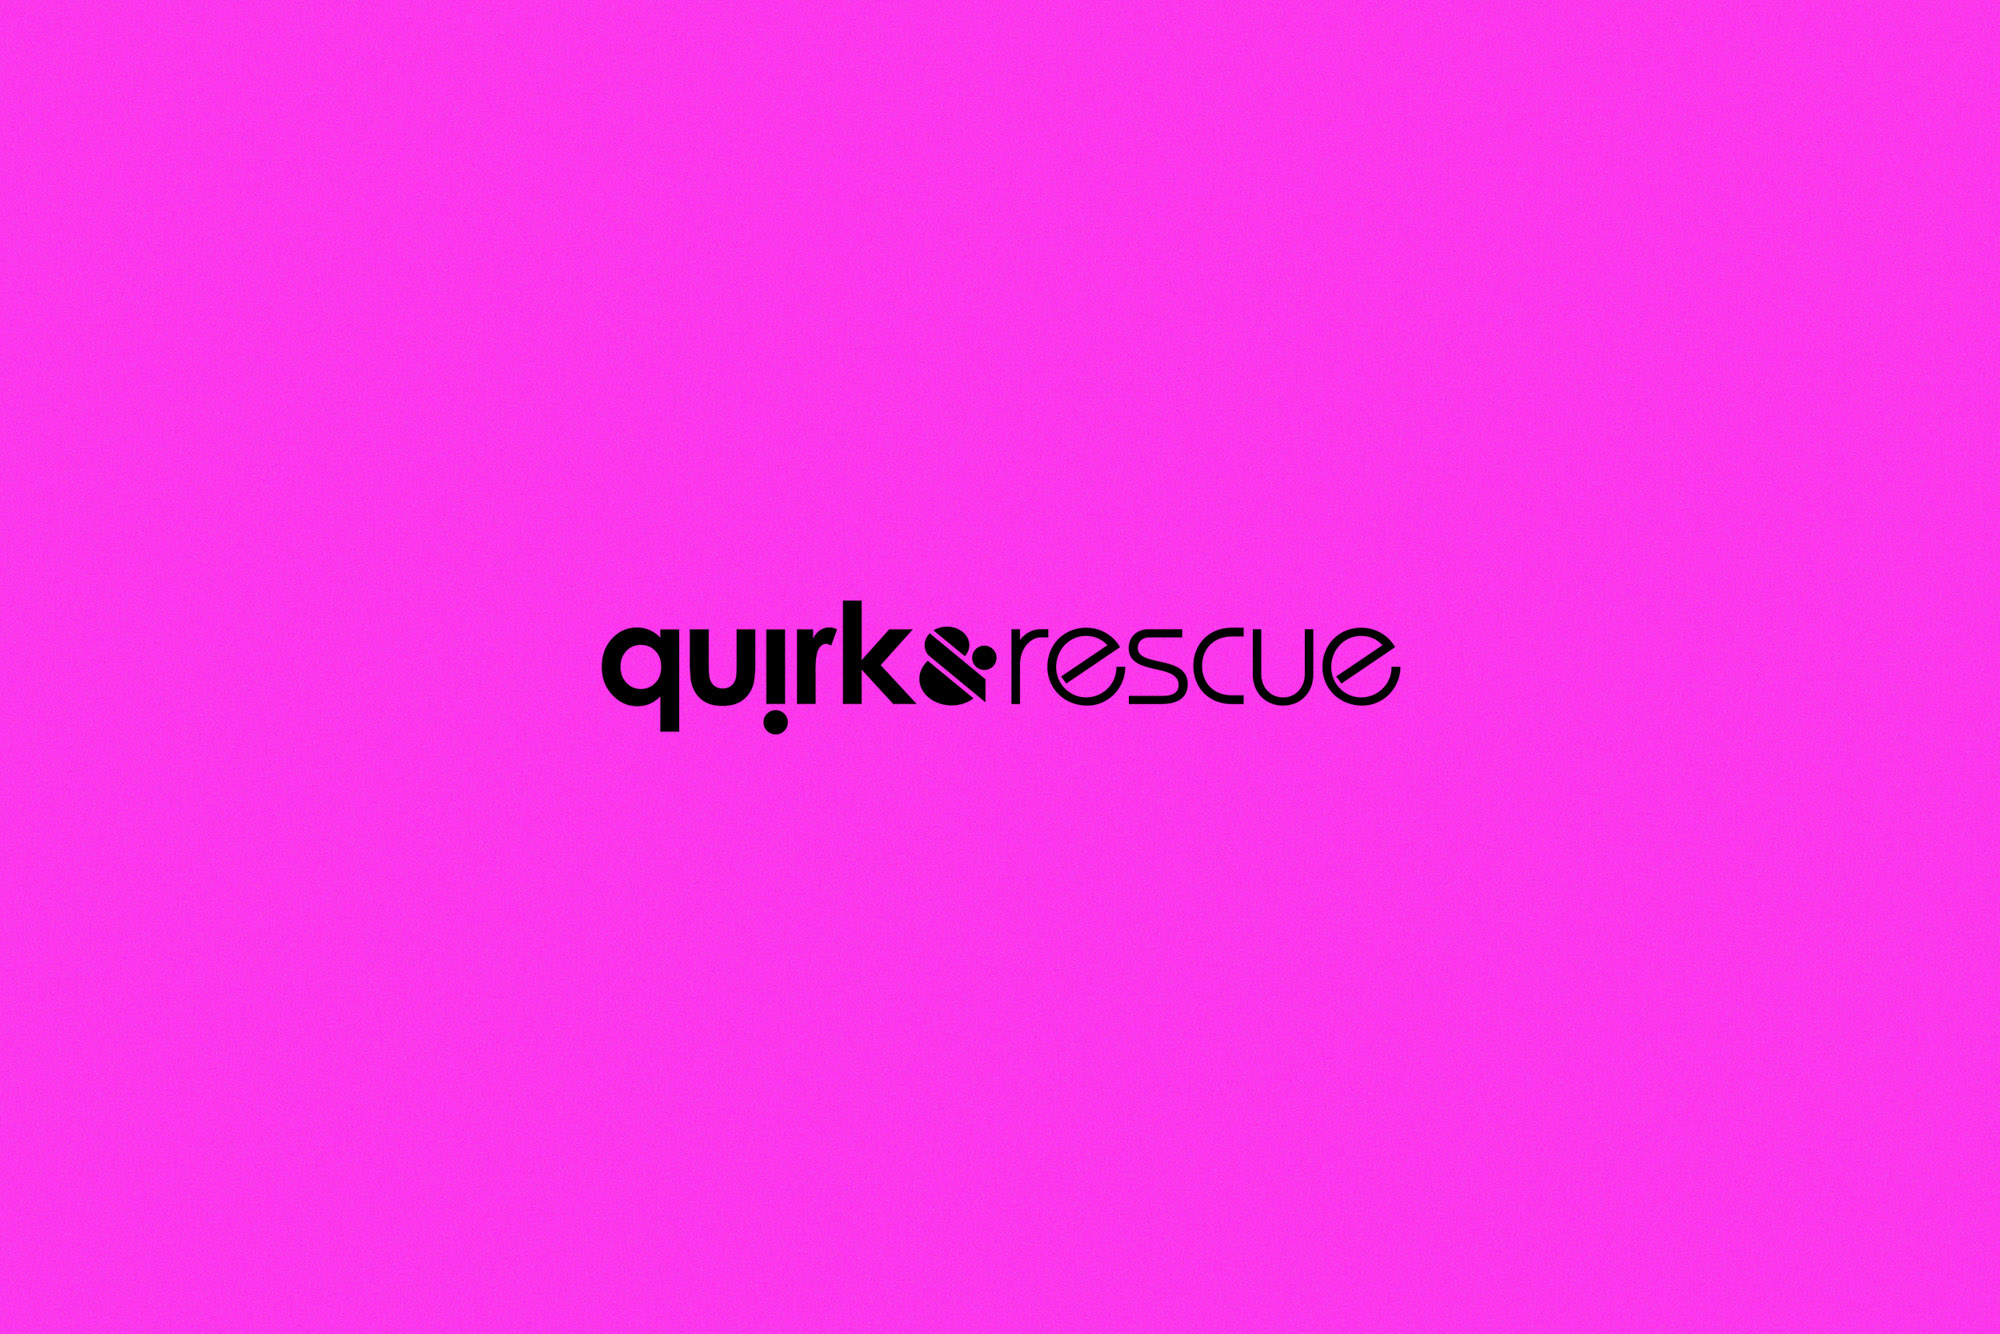 Quirk & Rescue by Wah Wah Lab - Logo.jpg